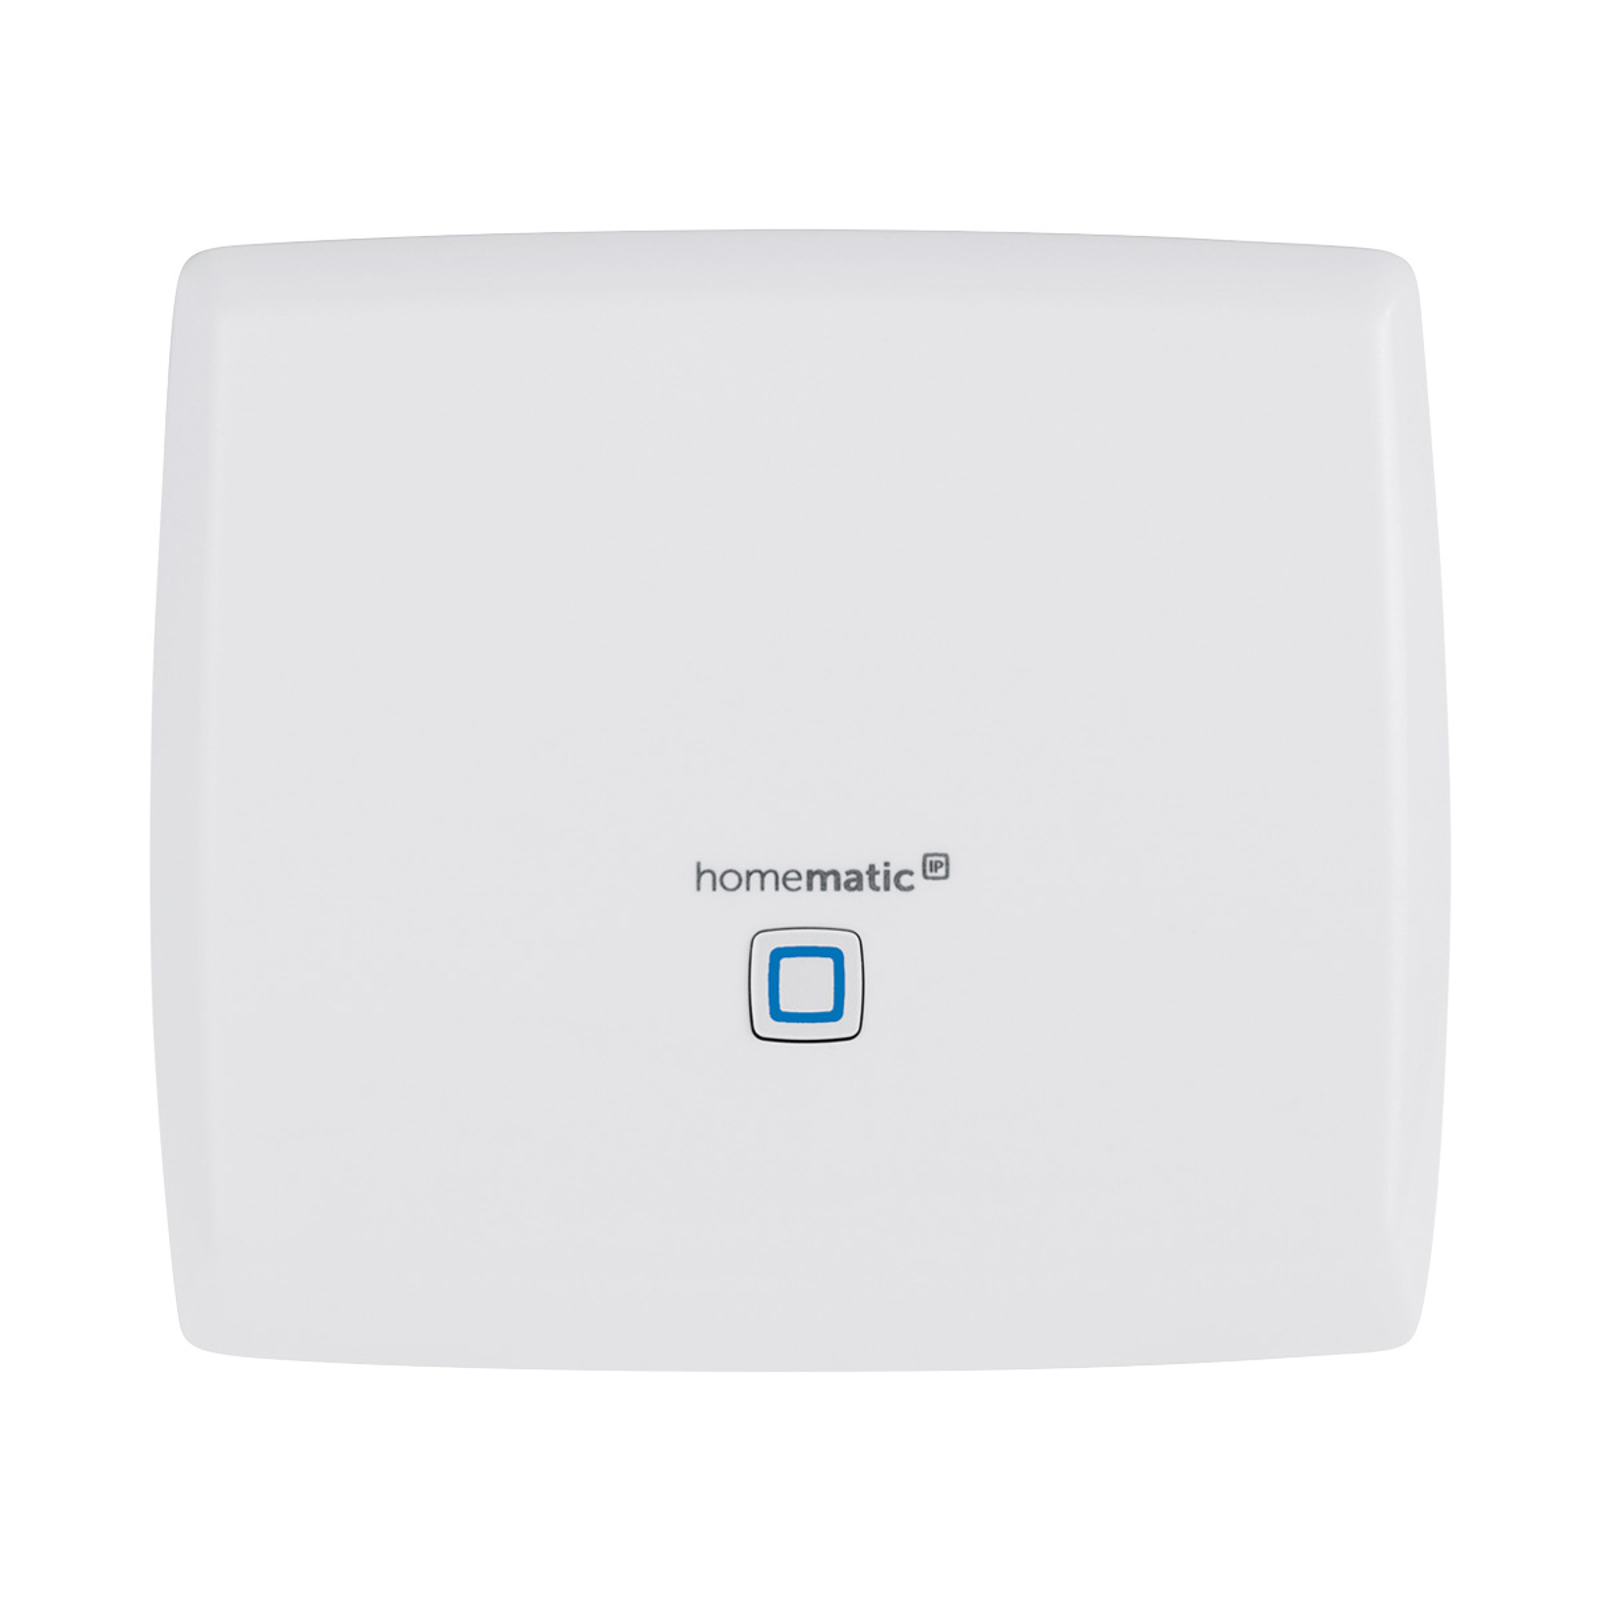 Homematic IP CCU3 kontrollsenter, lokalt